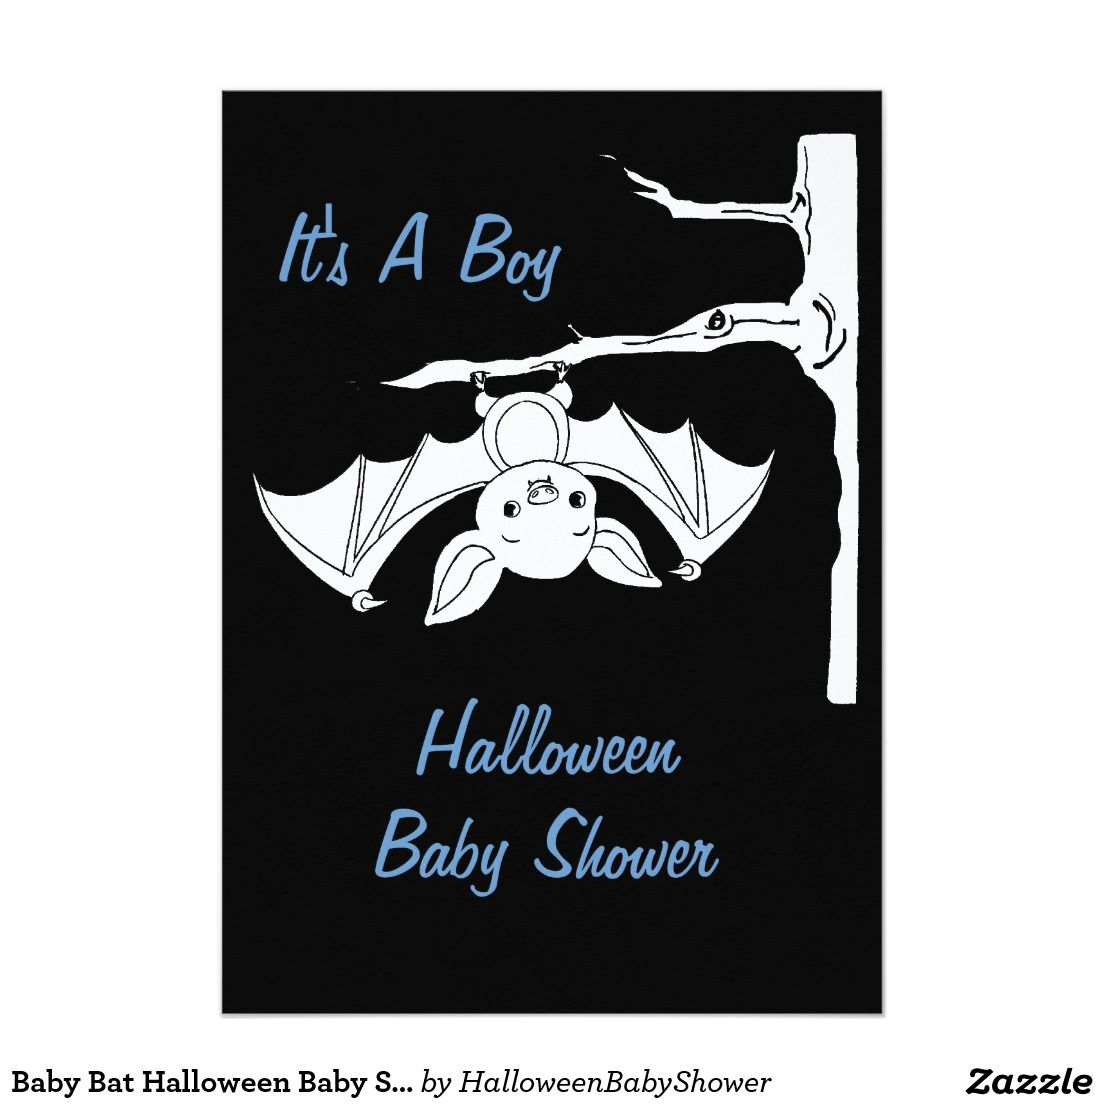 Baby Bat Halloween Baby Shower Invitation Cards 5\